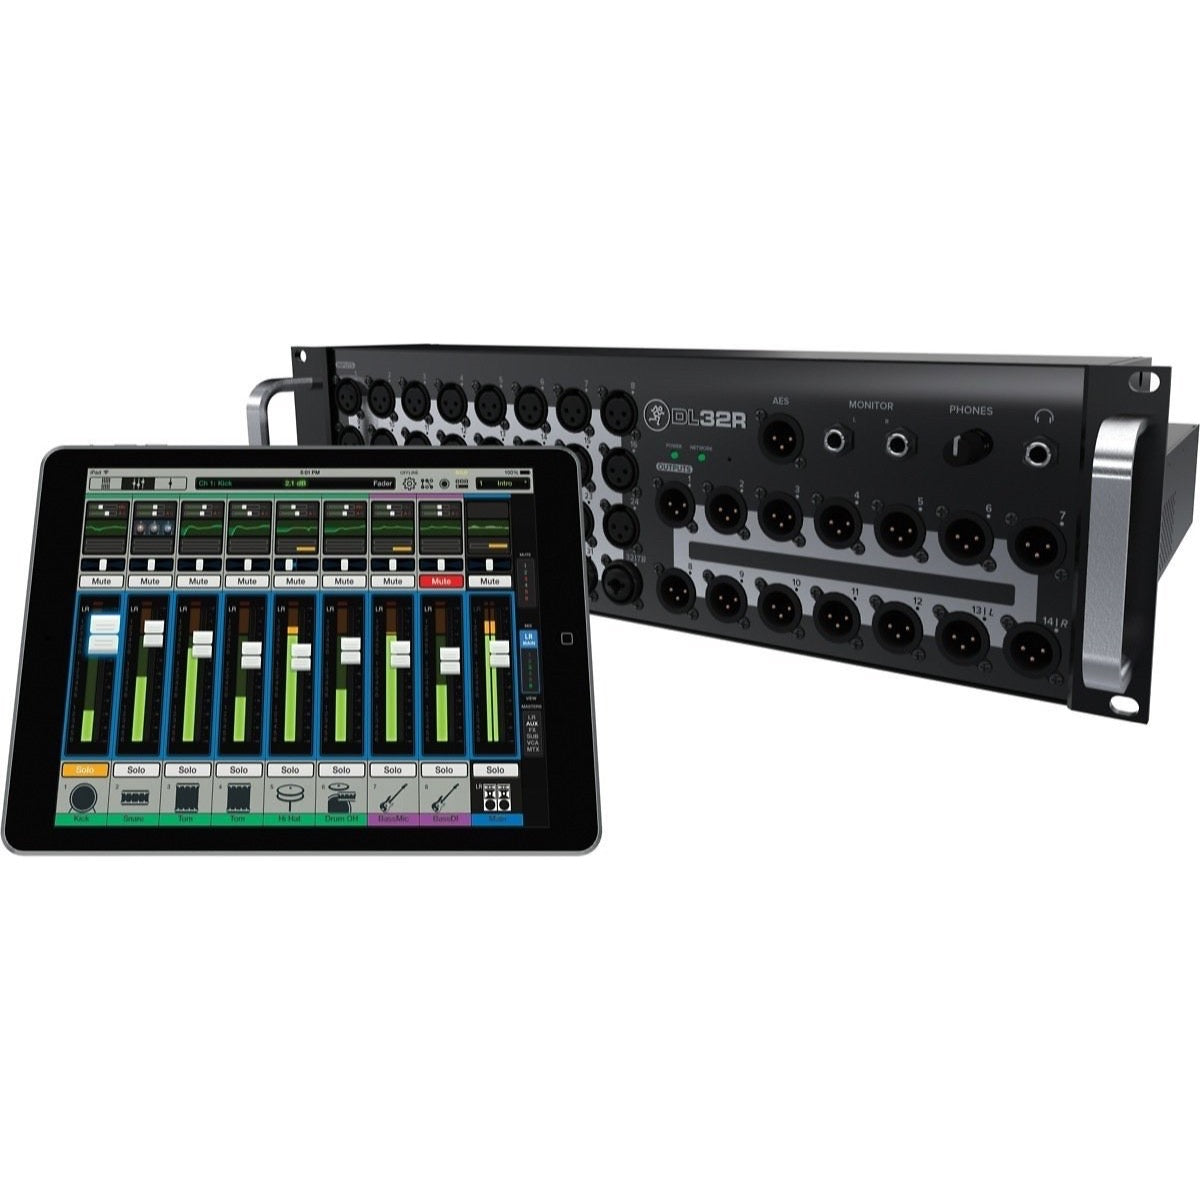 Mackie DL32R Wireless Digital Live Sound Mixer